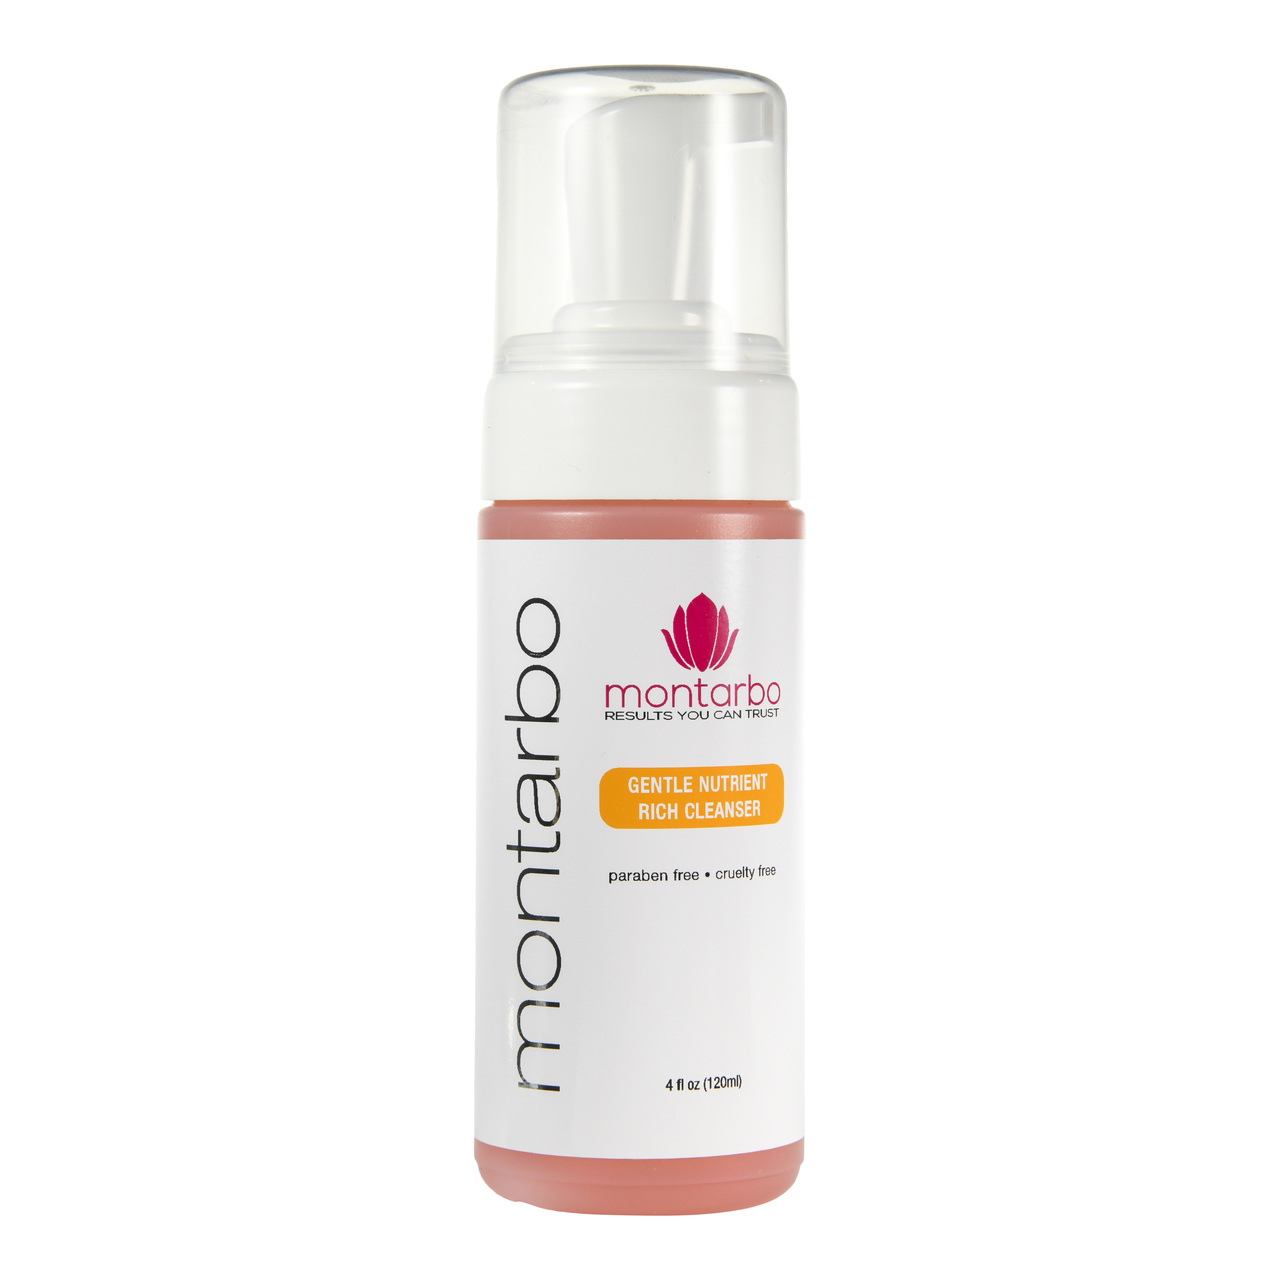 Montarbo Skincare Gentle Nutrient Rich Cleanser